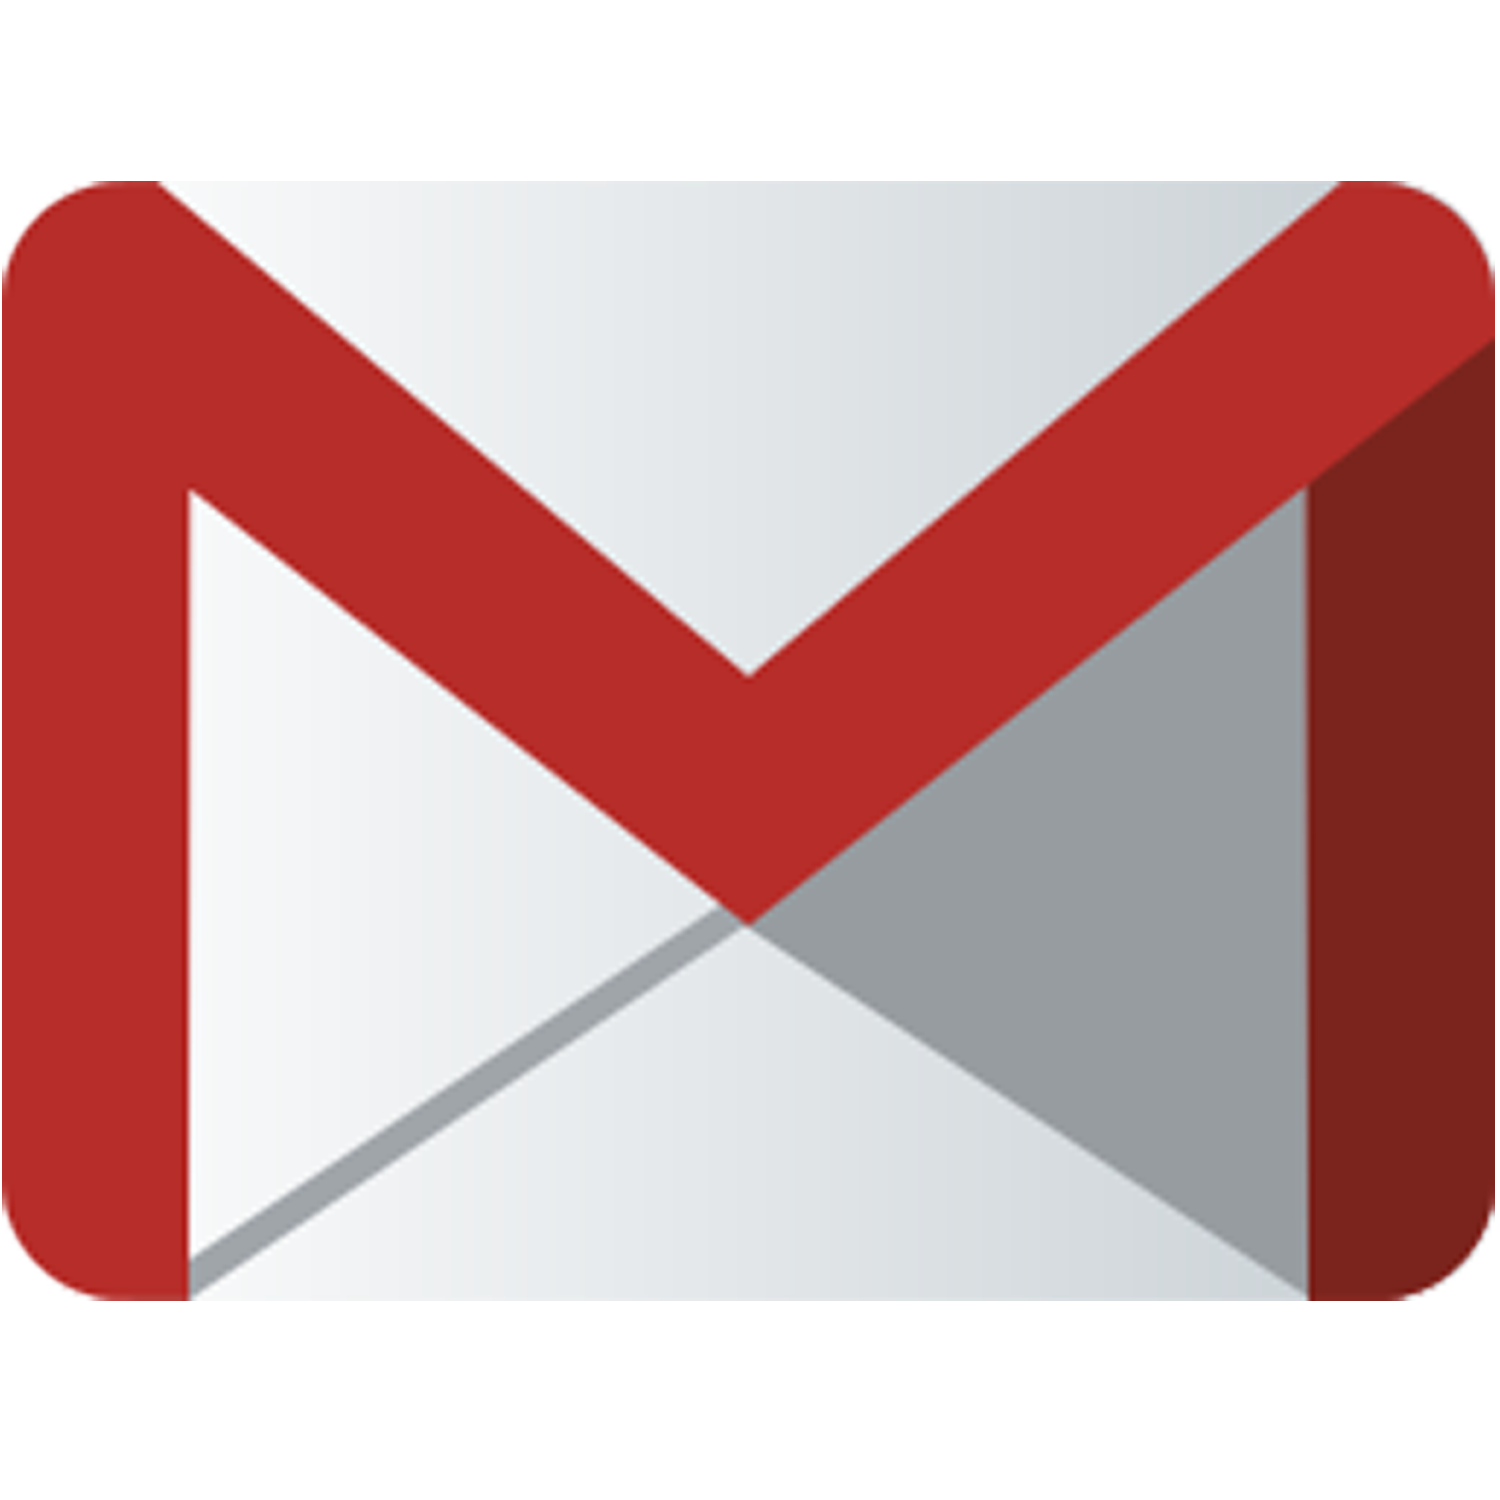 Mailbox Provider Mail Gmail Email Yahoo! PNG Image